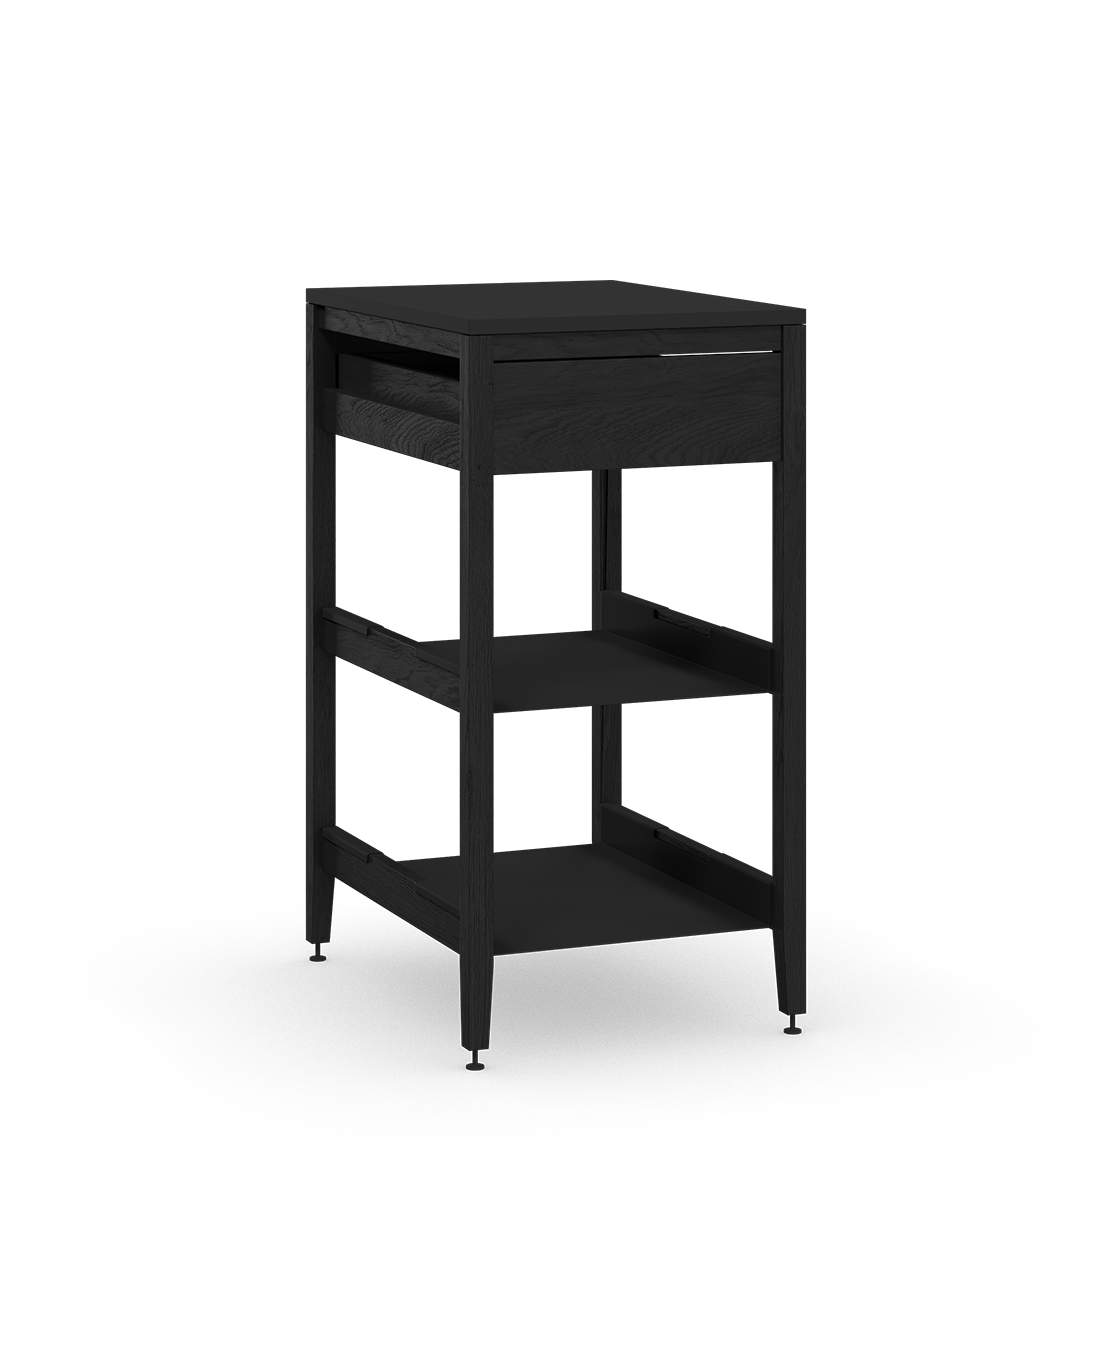 coquo radix midnight black stained oak solid wood modular 2 shelves 1 drawer base kitchen cabinet 18 inch C1-C-18SB-1022-BK